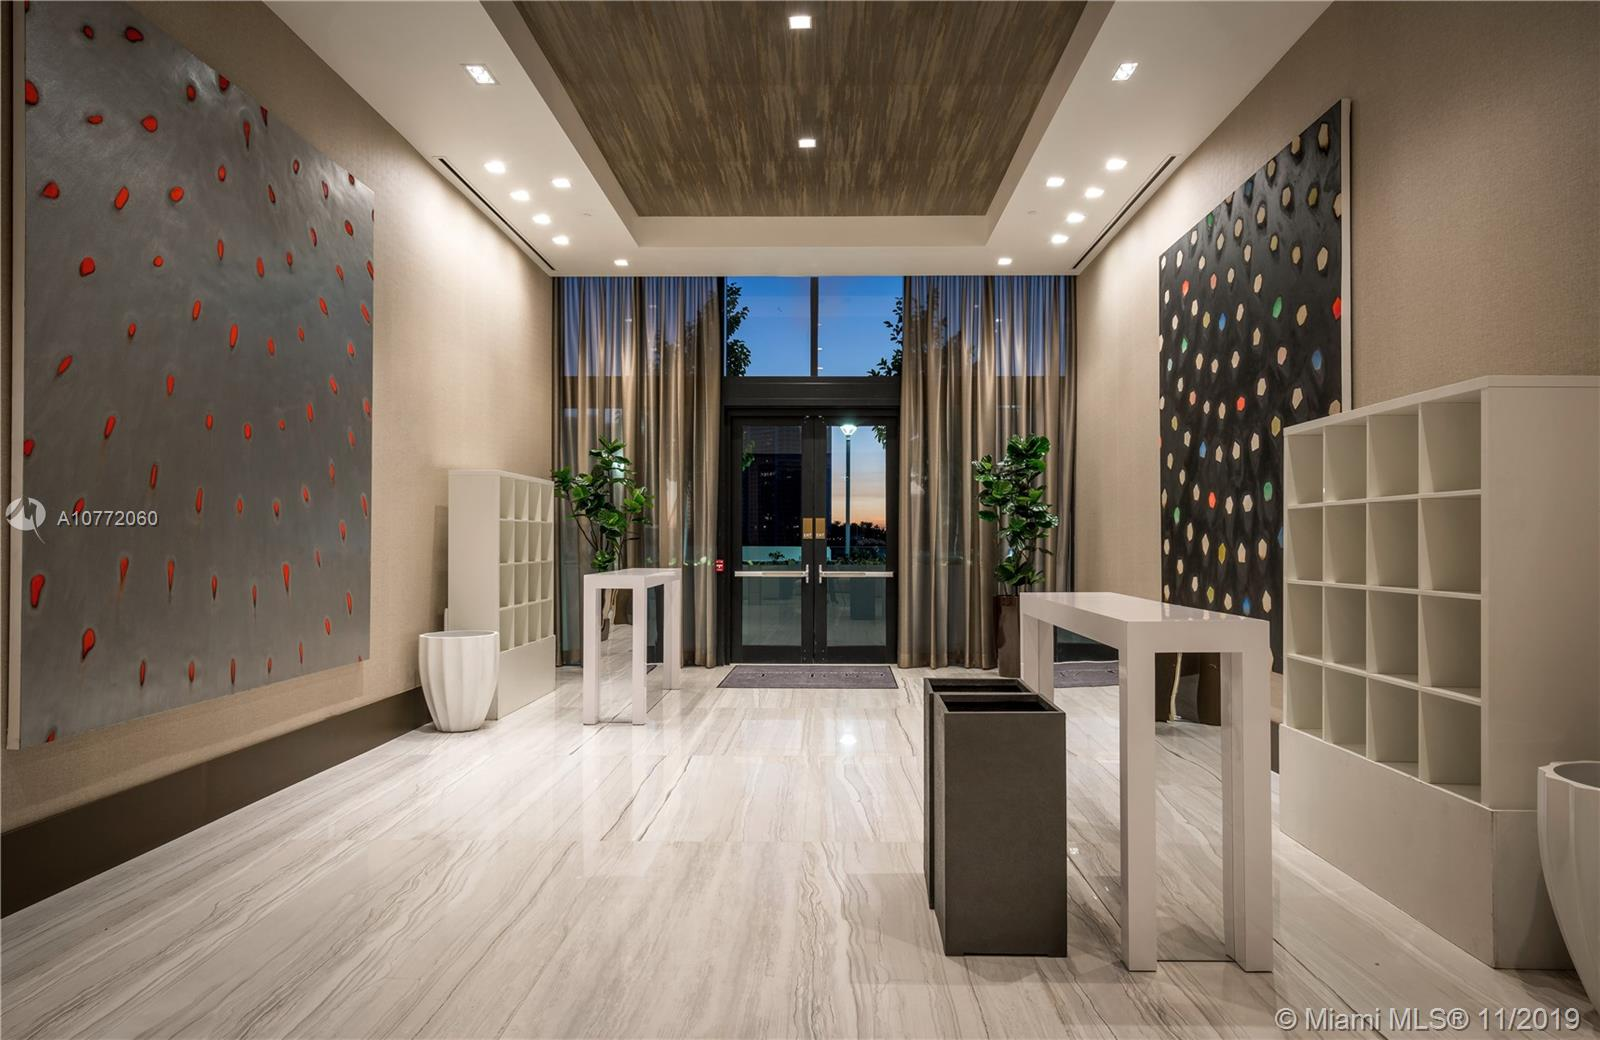 Beautiful corner unit!!! Glass on all three sides. Includes flooring, custom built in closets, dropped ceilings, window treatments, full developer warranty! Amenities include: private gatehouse entry, full time concierge, 10,000 sq/ft of gym/spa, ,marina, pier, 2 pools, restaurant, Wine Cellar, Cigar Room, Social Rooms, teenage room, Guest Suites, Caterers Kitchen with Private dining room and MORE!!!This is a developer owned unit. Extra parking, extra storage, private garages, marina slips, guest suites, hobby rooms are only available by purchasing through developer.Not available with resales unless they have already.We also have other residences available that are not listed.Many other advantages of purchasing direct.